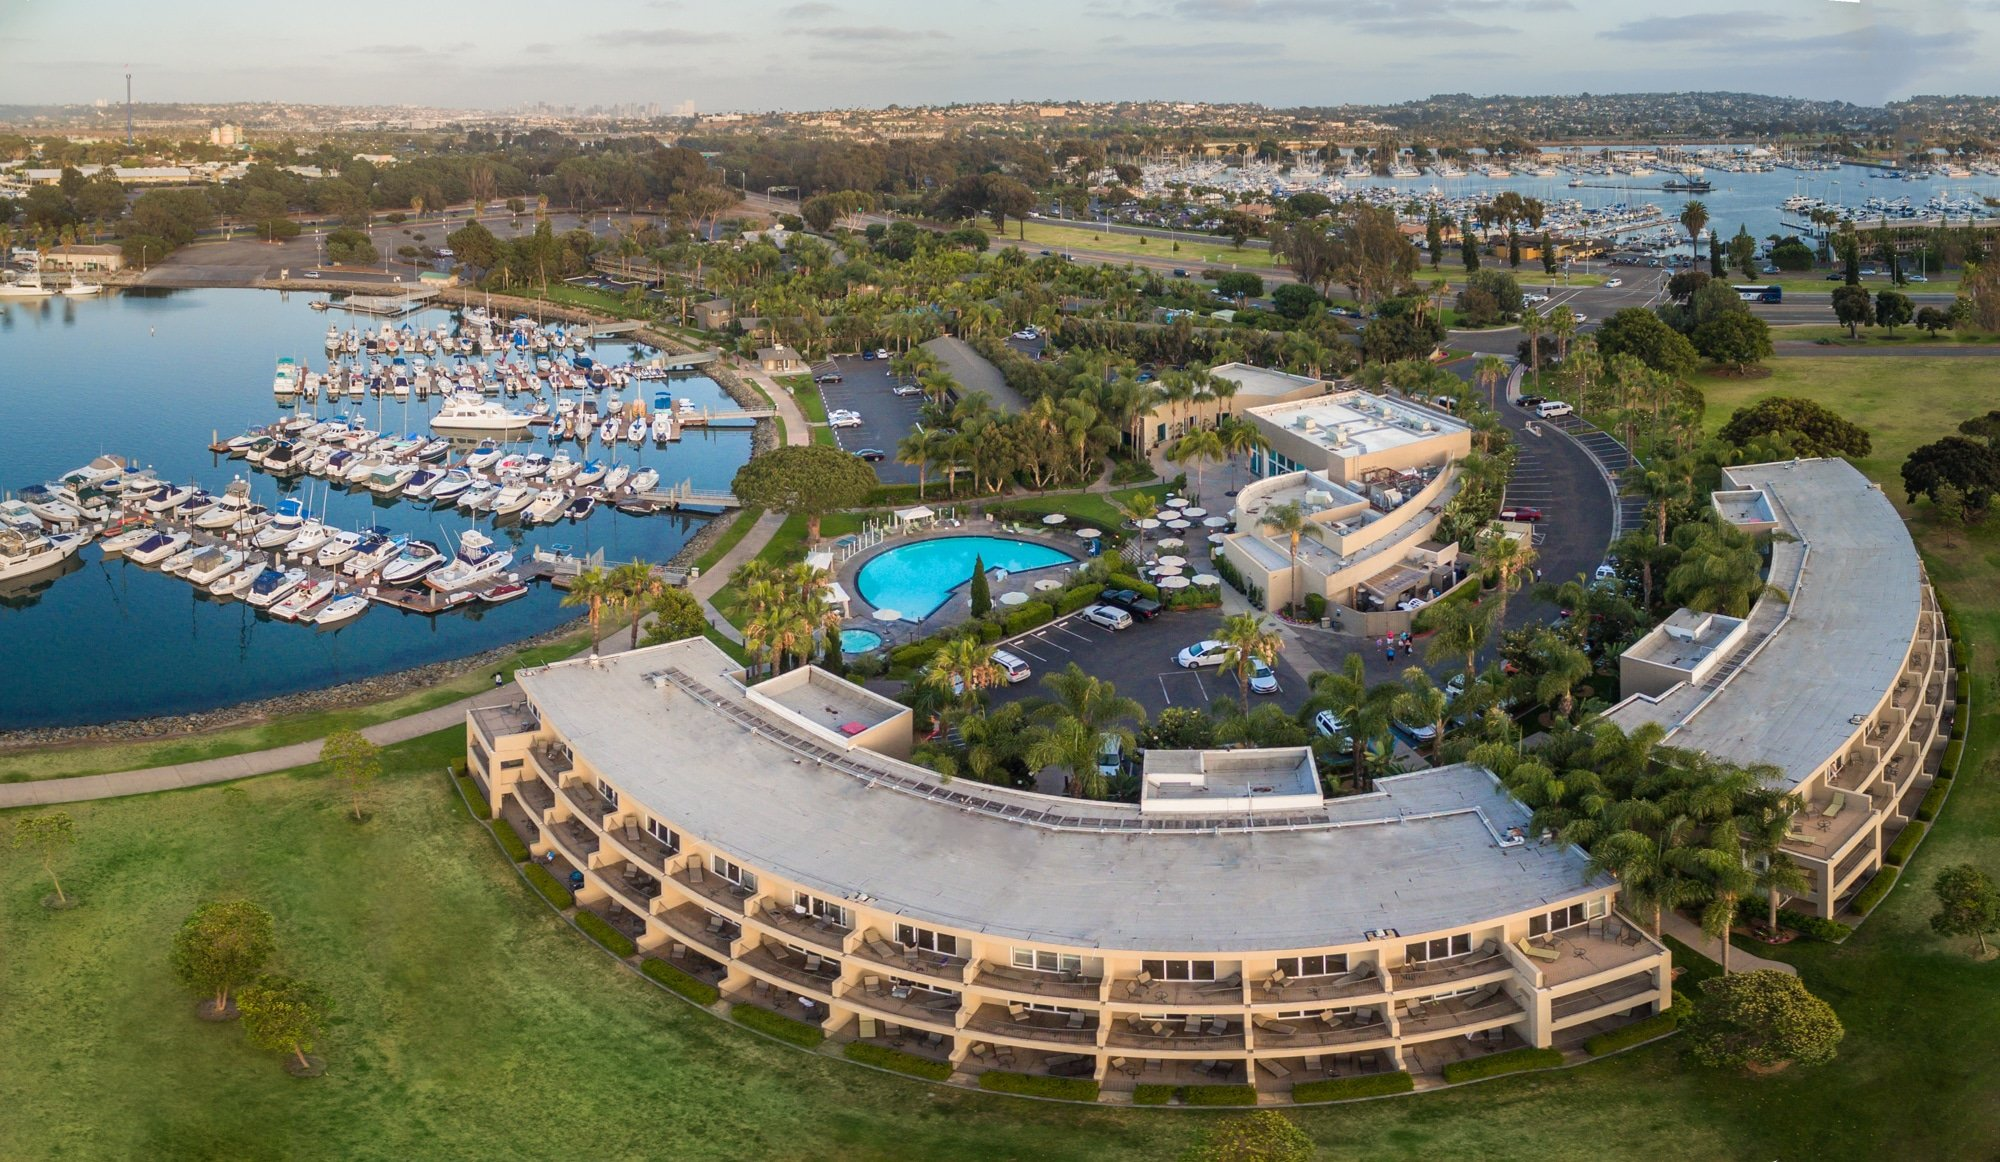 Hotels near Seaworld San Diego: The Dana on Mission Bay